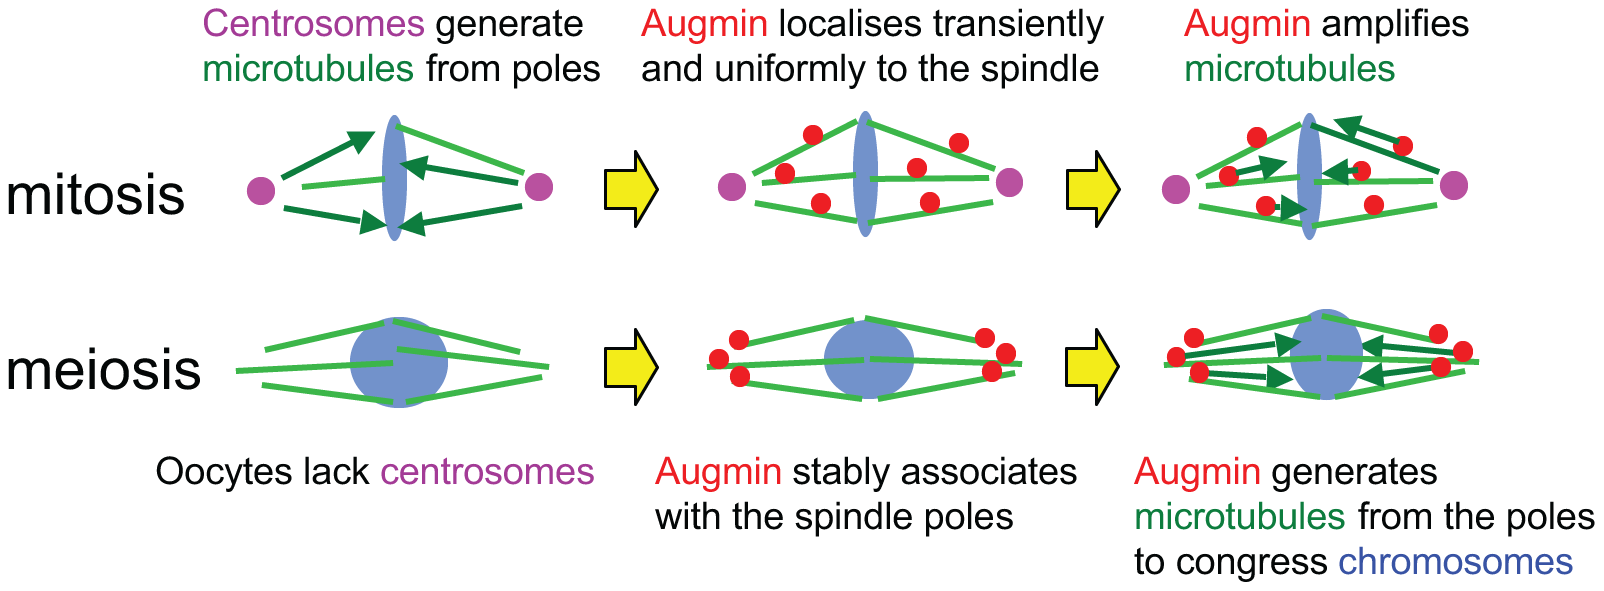 Stable association of Augmin with spindle poles compensate for the lack of centrosomes in oocytes.